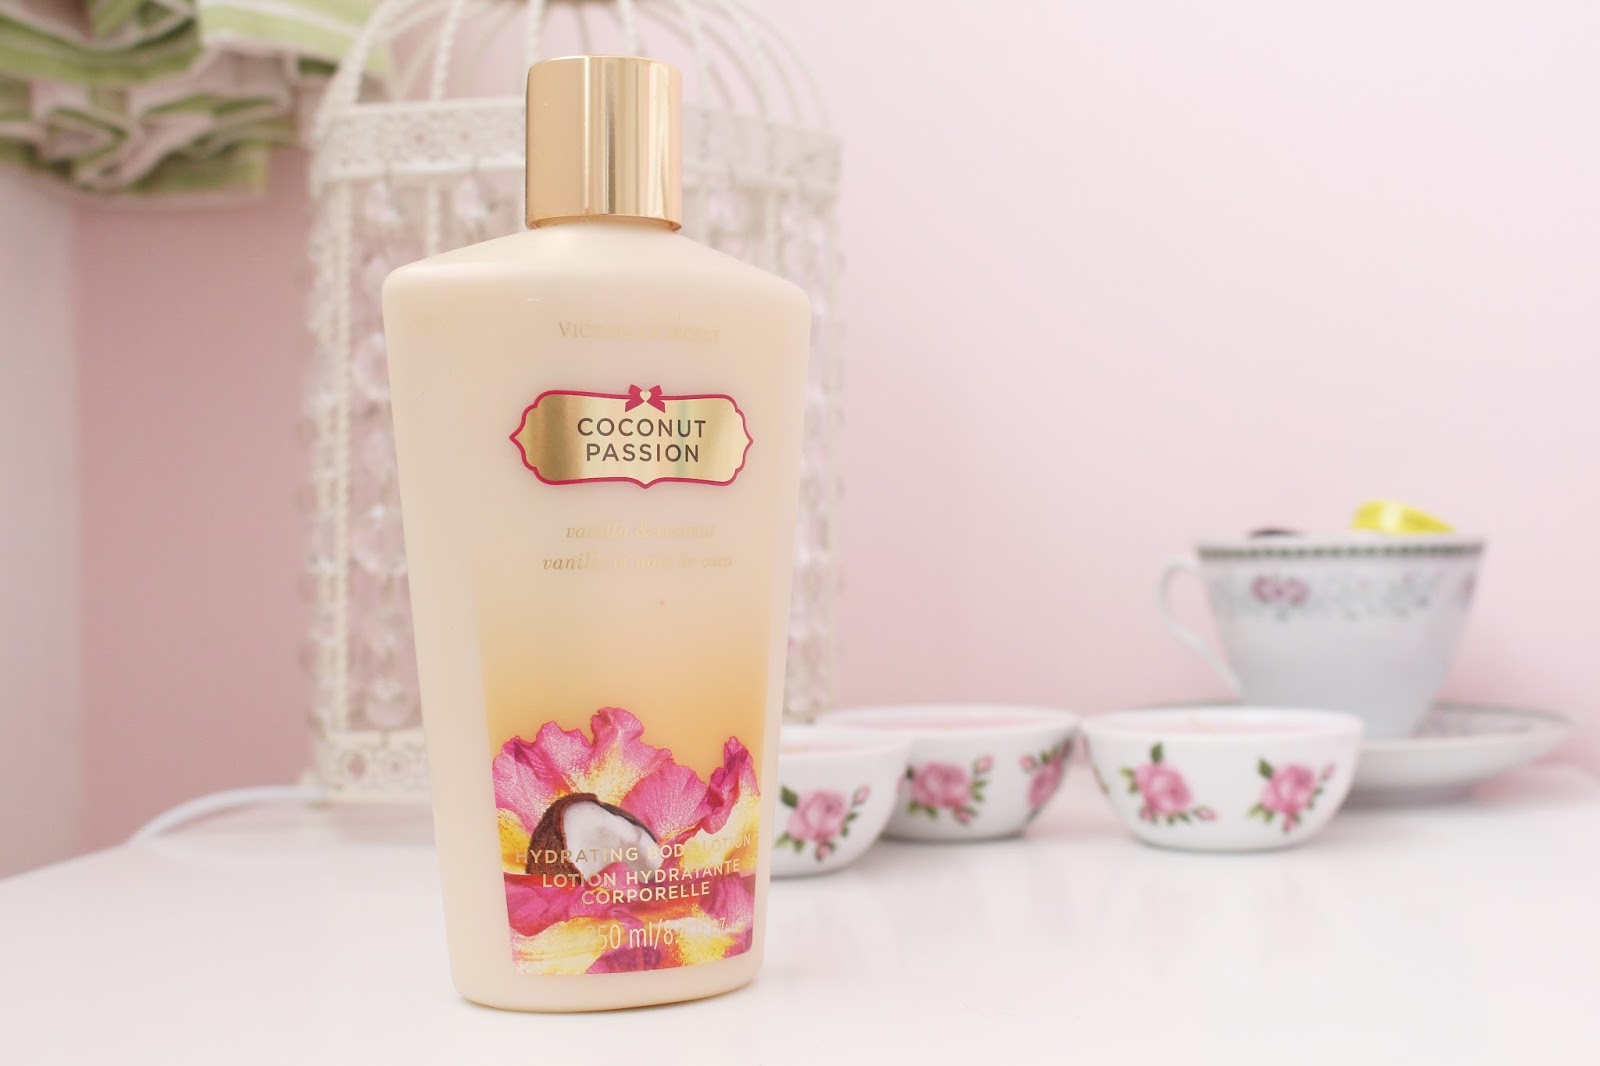 Victoria's Secret Coconut Passion Body Lotion